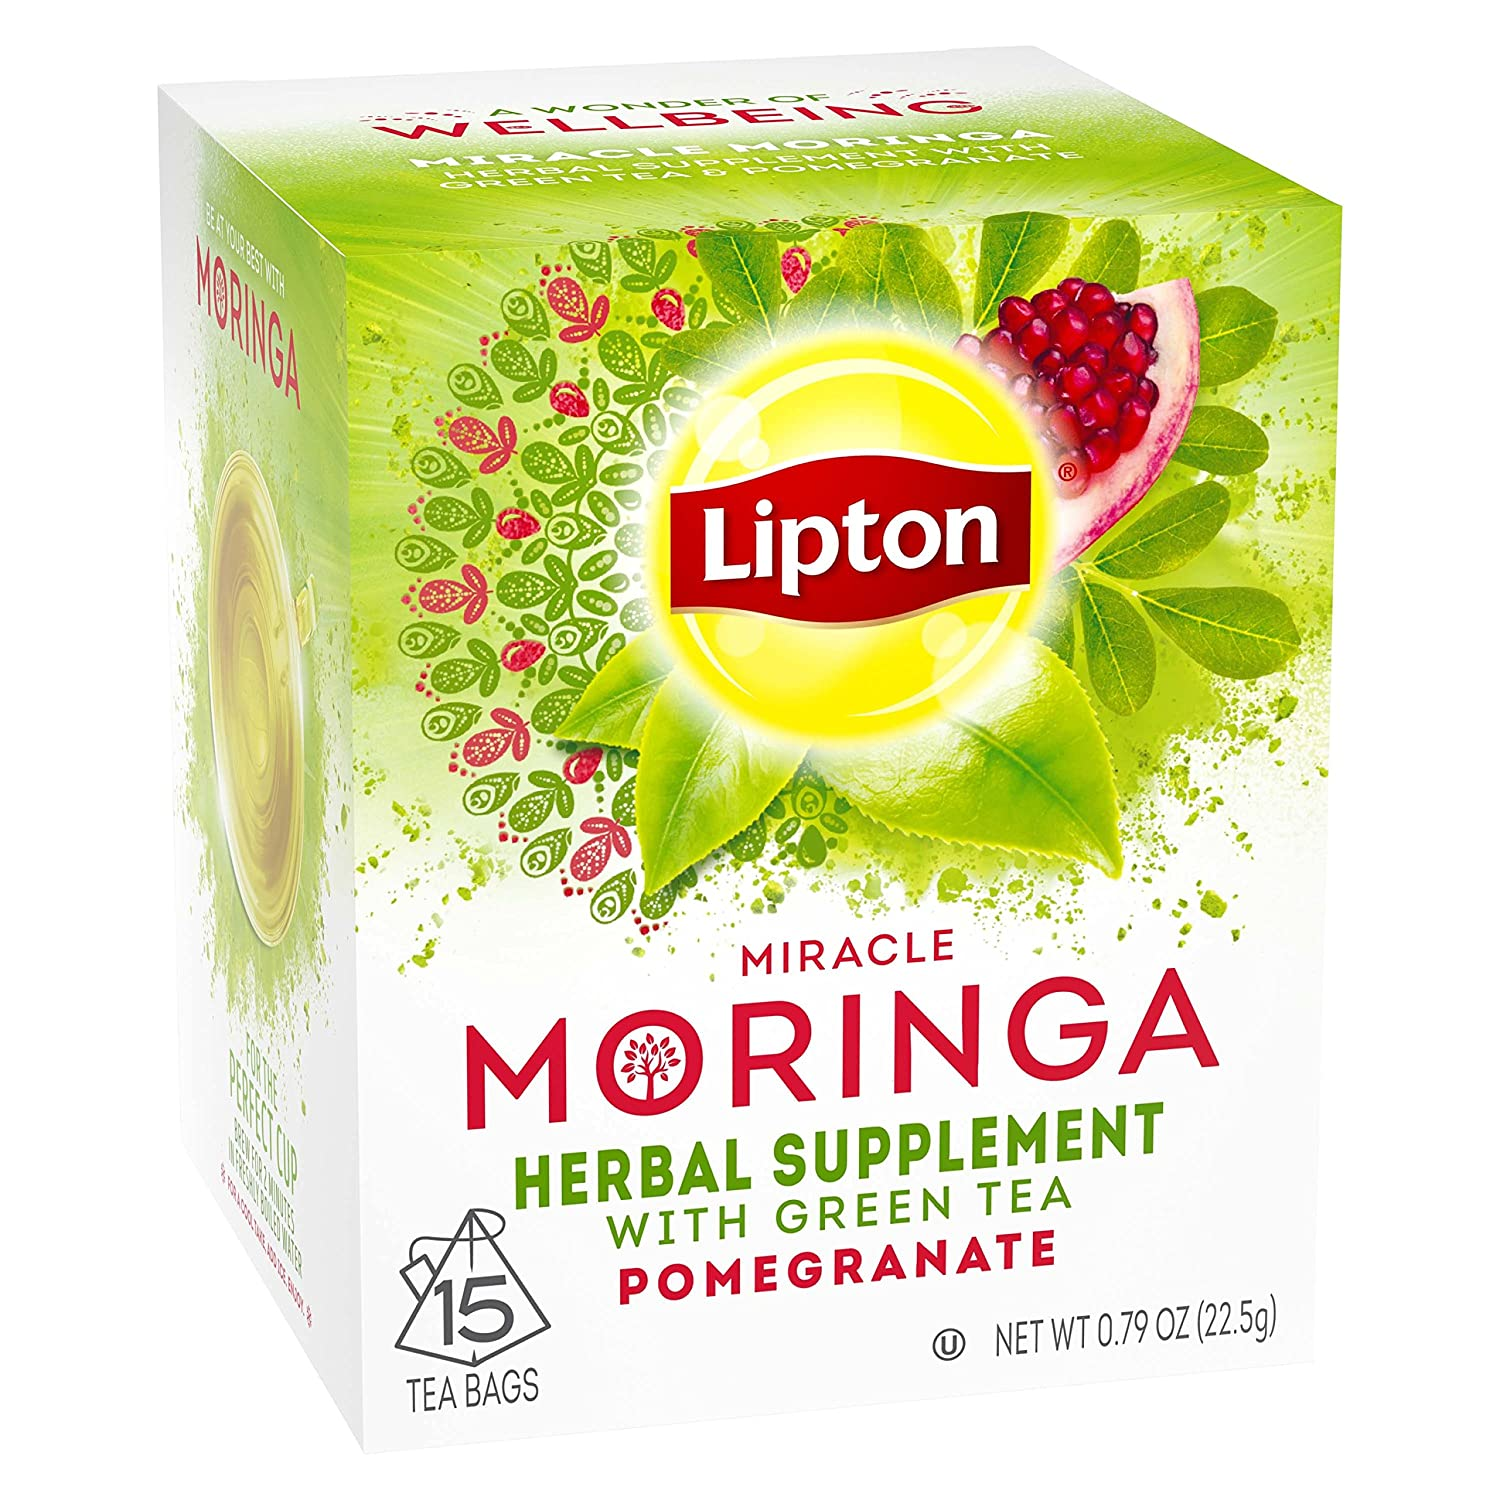 Lipton Herbal Supplement Tea Bags, Miracle Moringa with Green Tea and Pomegranate